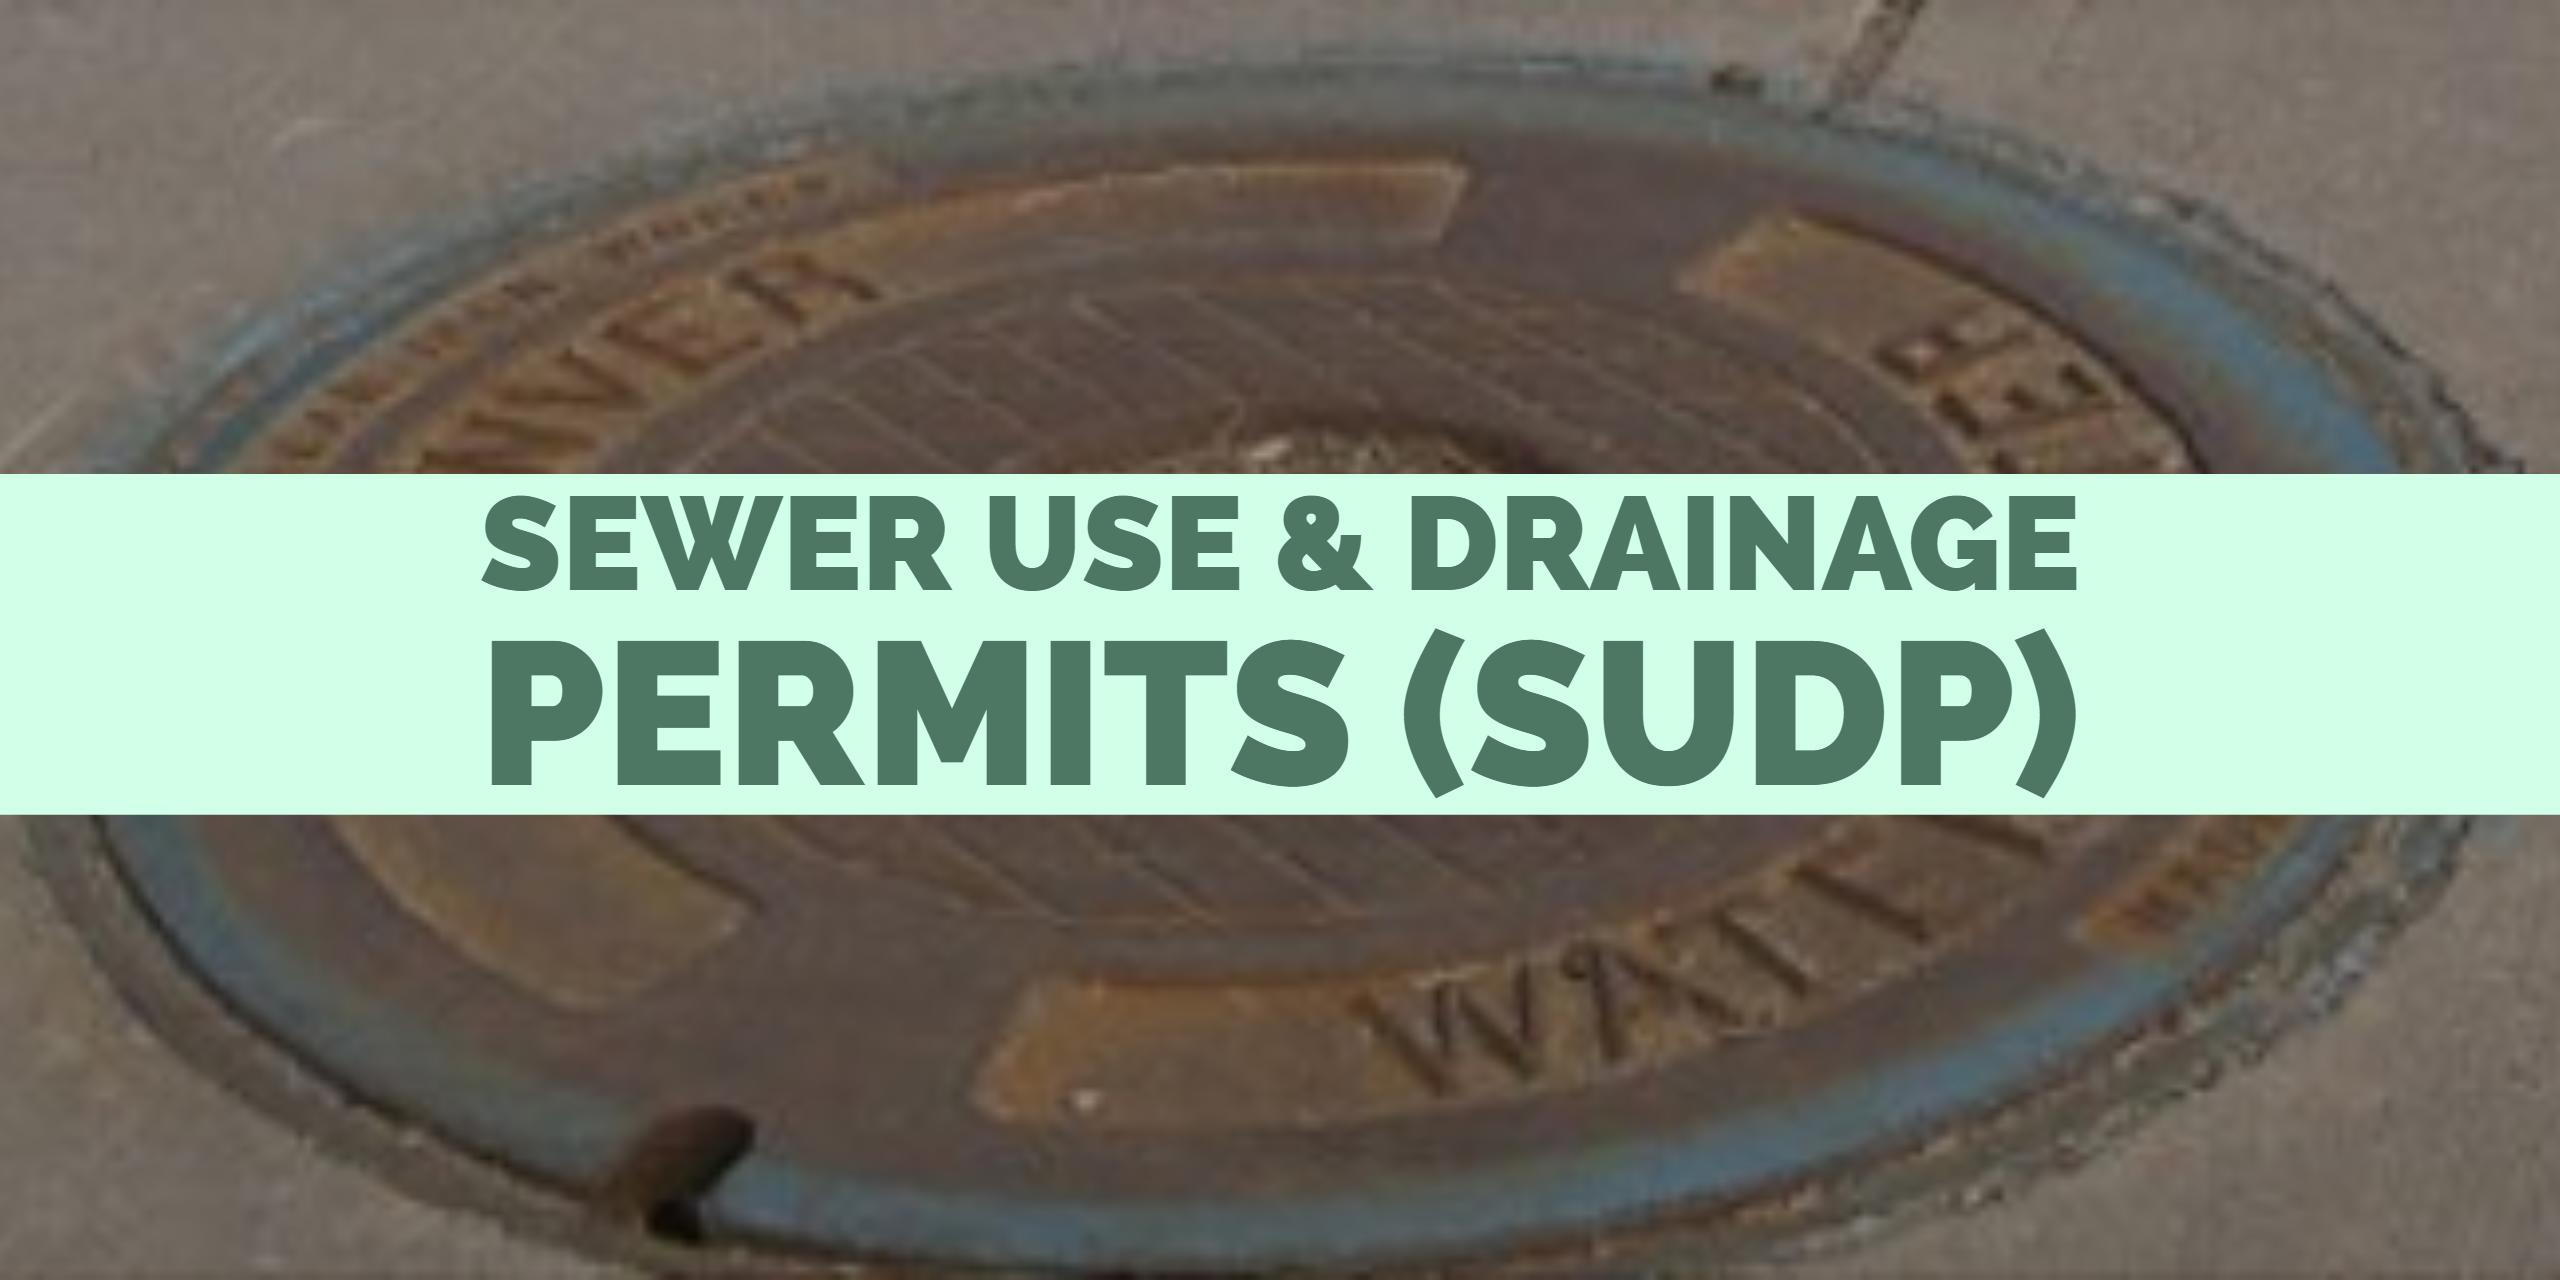 Link to the Sewer Use & Drainage Permits (SUDP) webpage